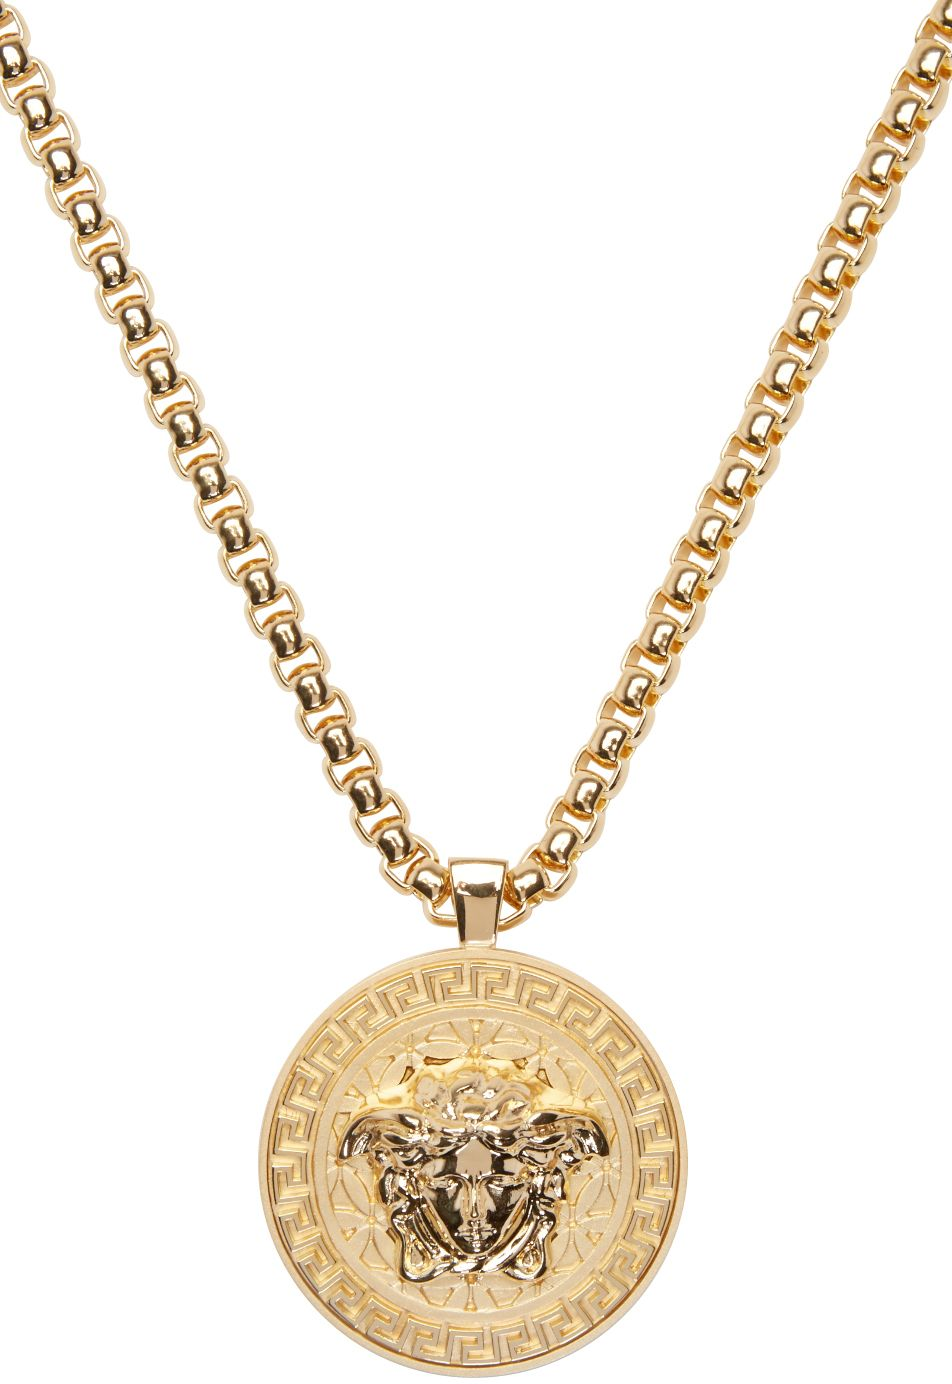 Cubic Curb Chain Necklace In Gold Tone Round Pendant Featuring Signature Carved Medusa Accent And Engraved Gree Chains For Men Gold Chains For Men Gold Chains